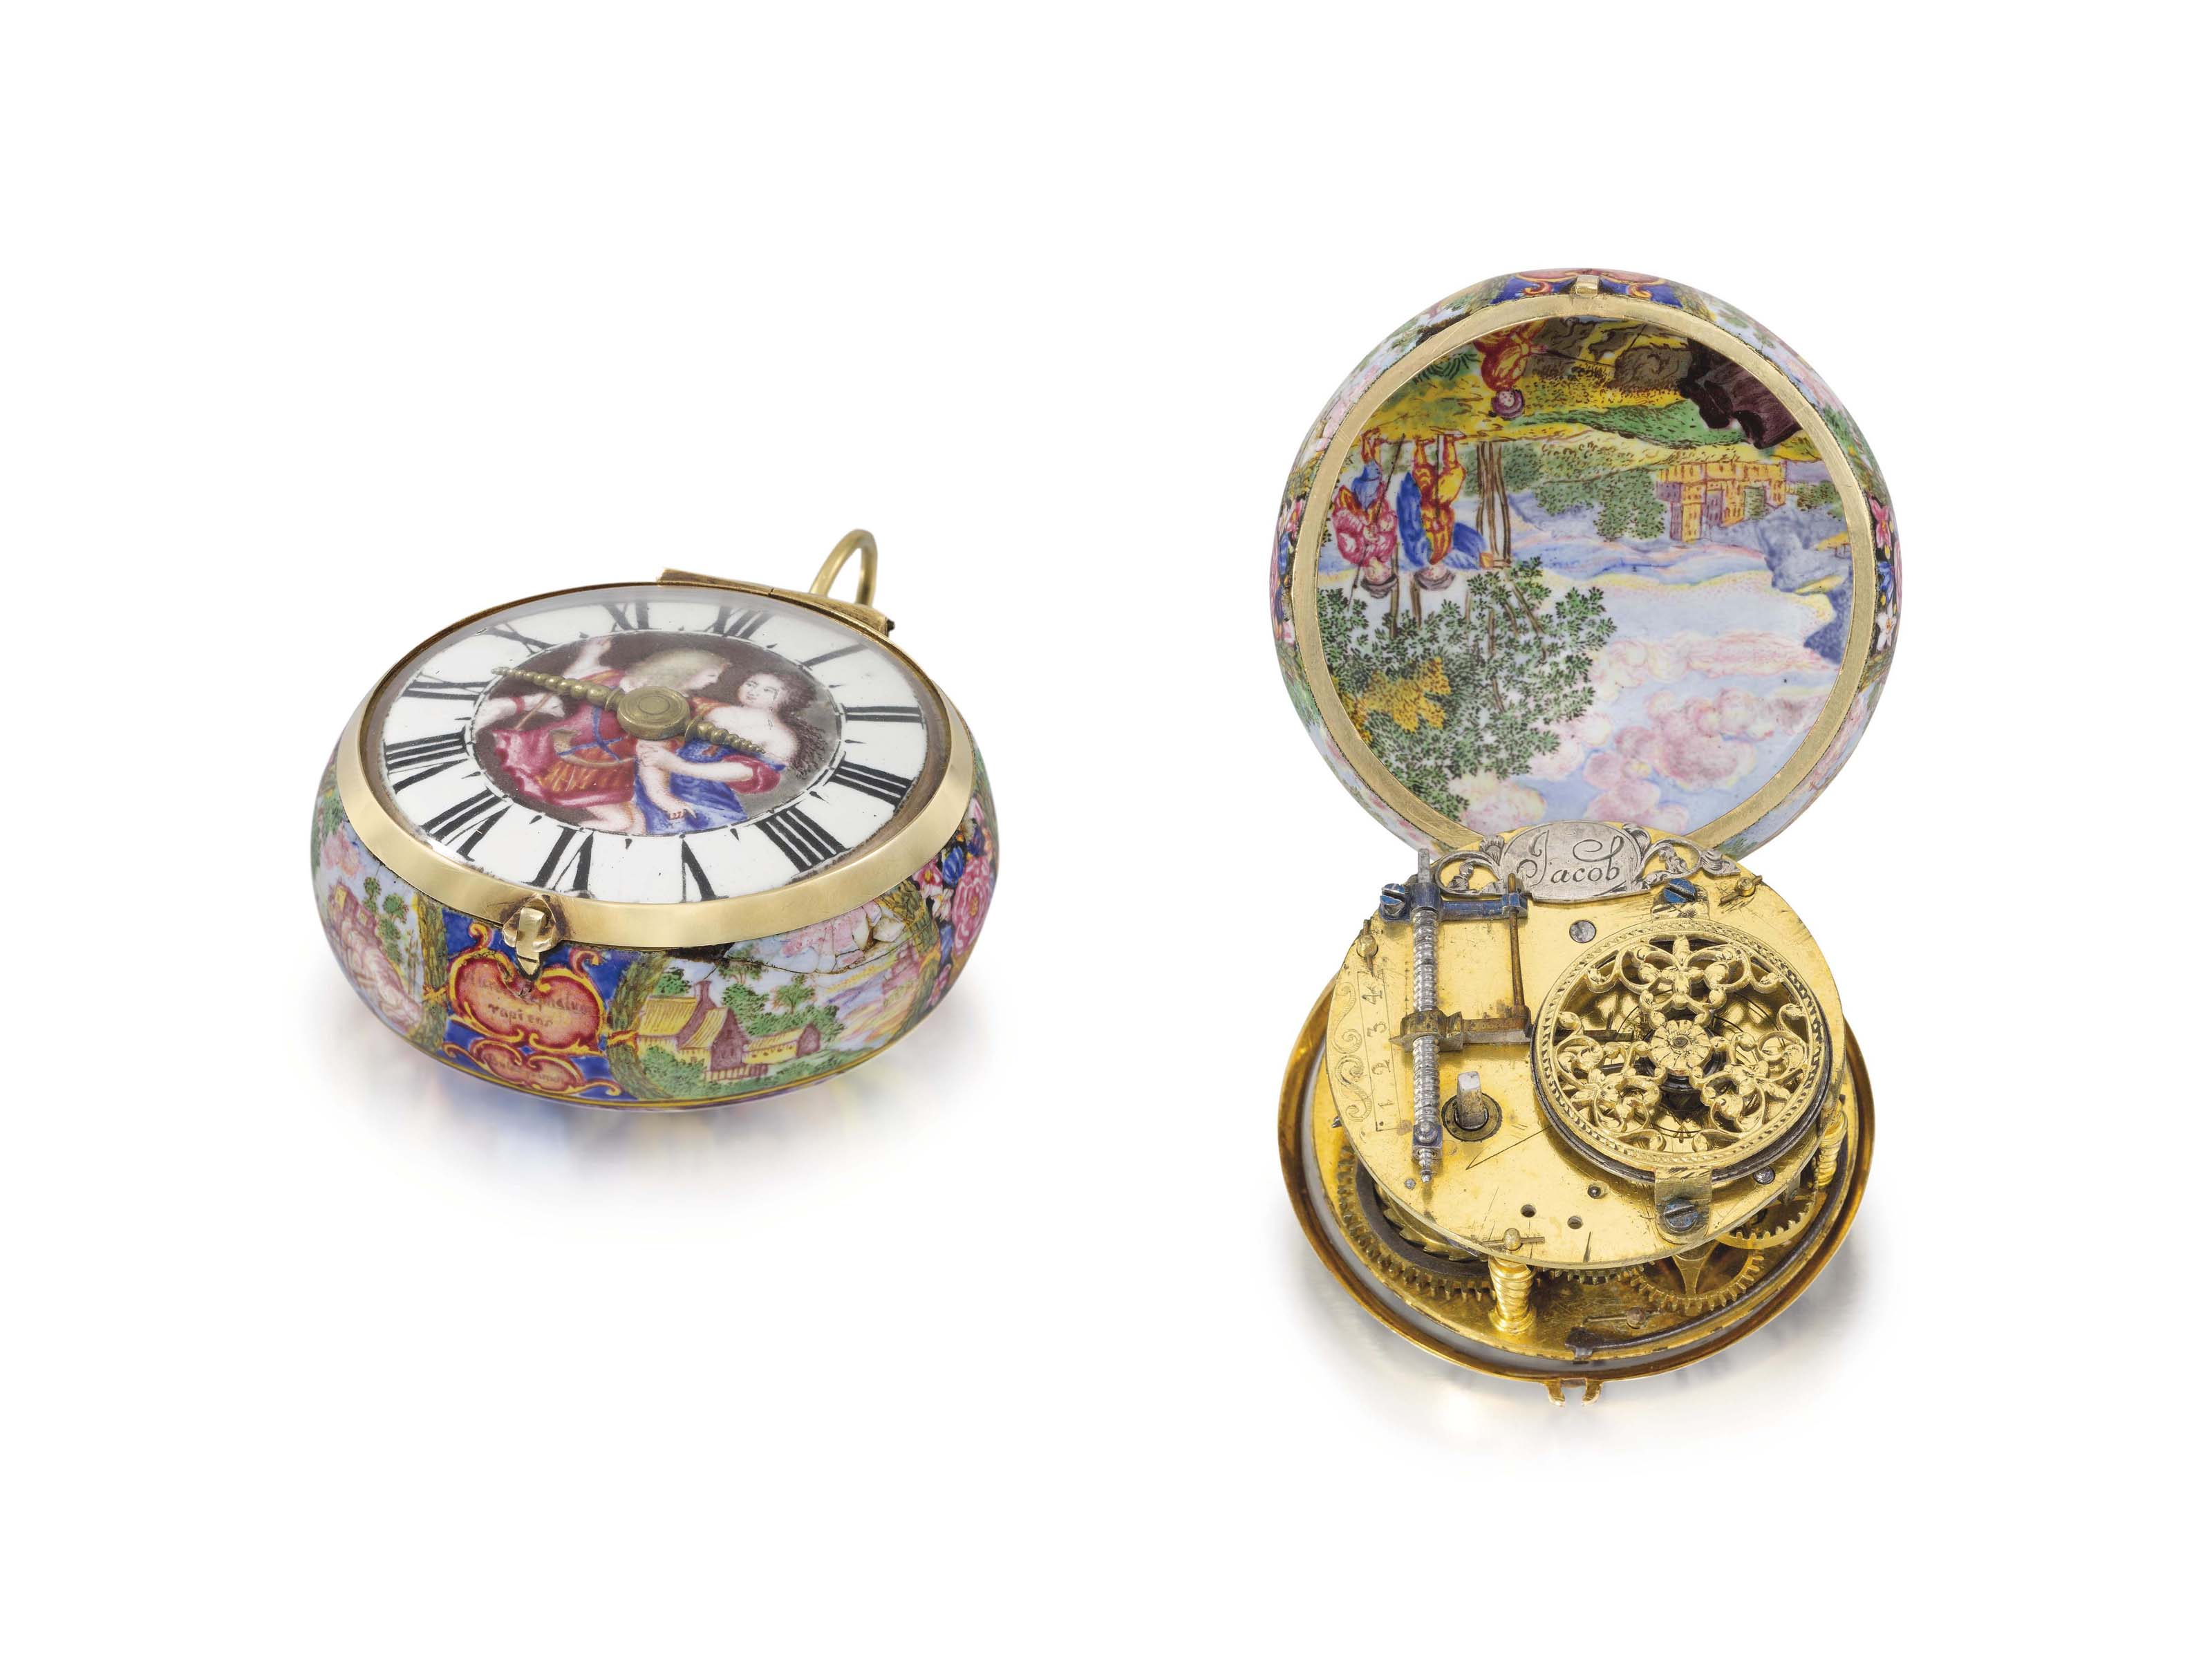 Jacob and Bulet. A very rare 20K gold and enamel early balance spring verge watch with Barrow regulator, the enamel scenes depicting the rapt of Cephalus by Aurora